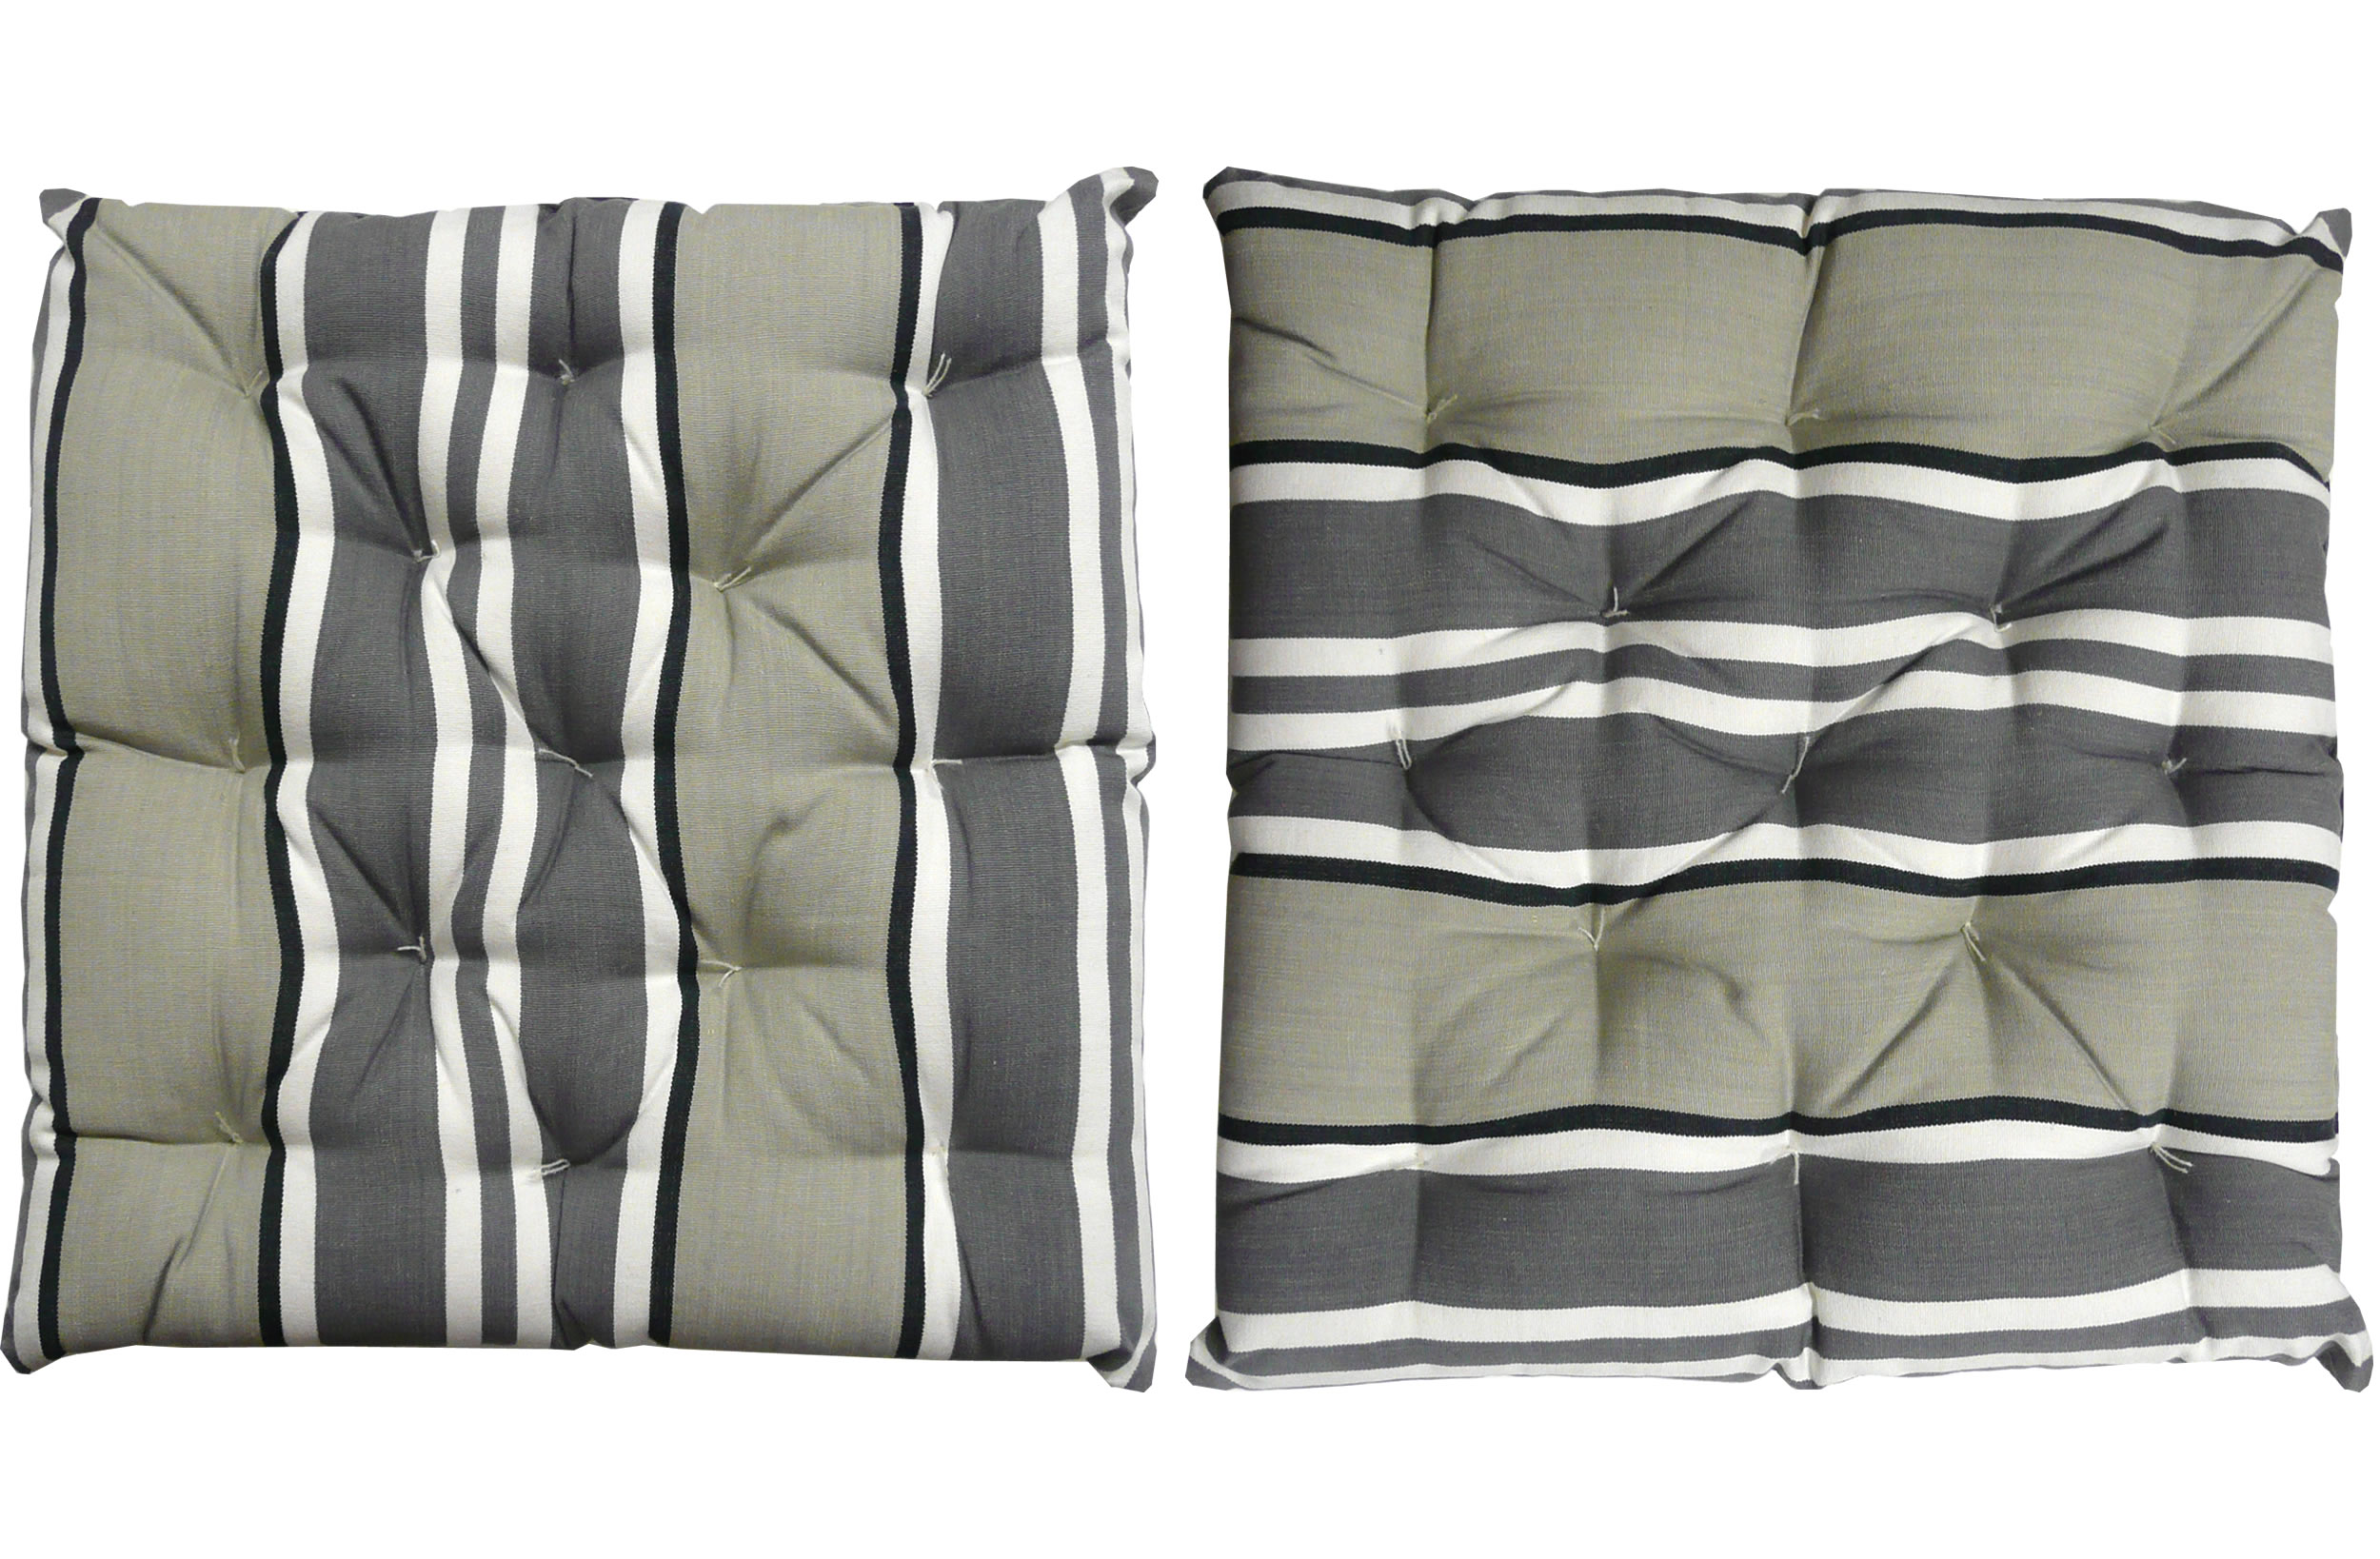 grey, pale grey, black - Seat Pad Cushions | Striped Seat Pads